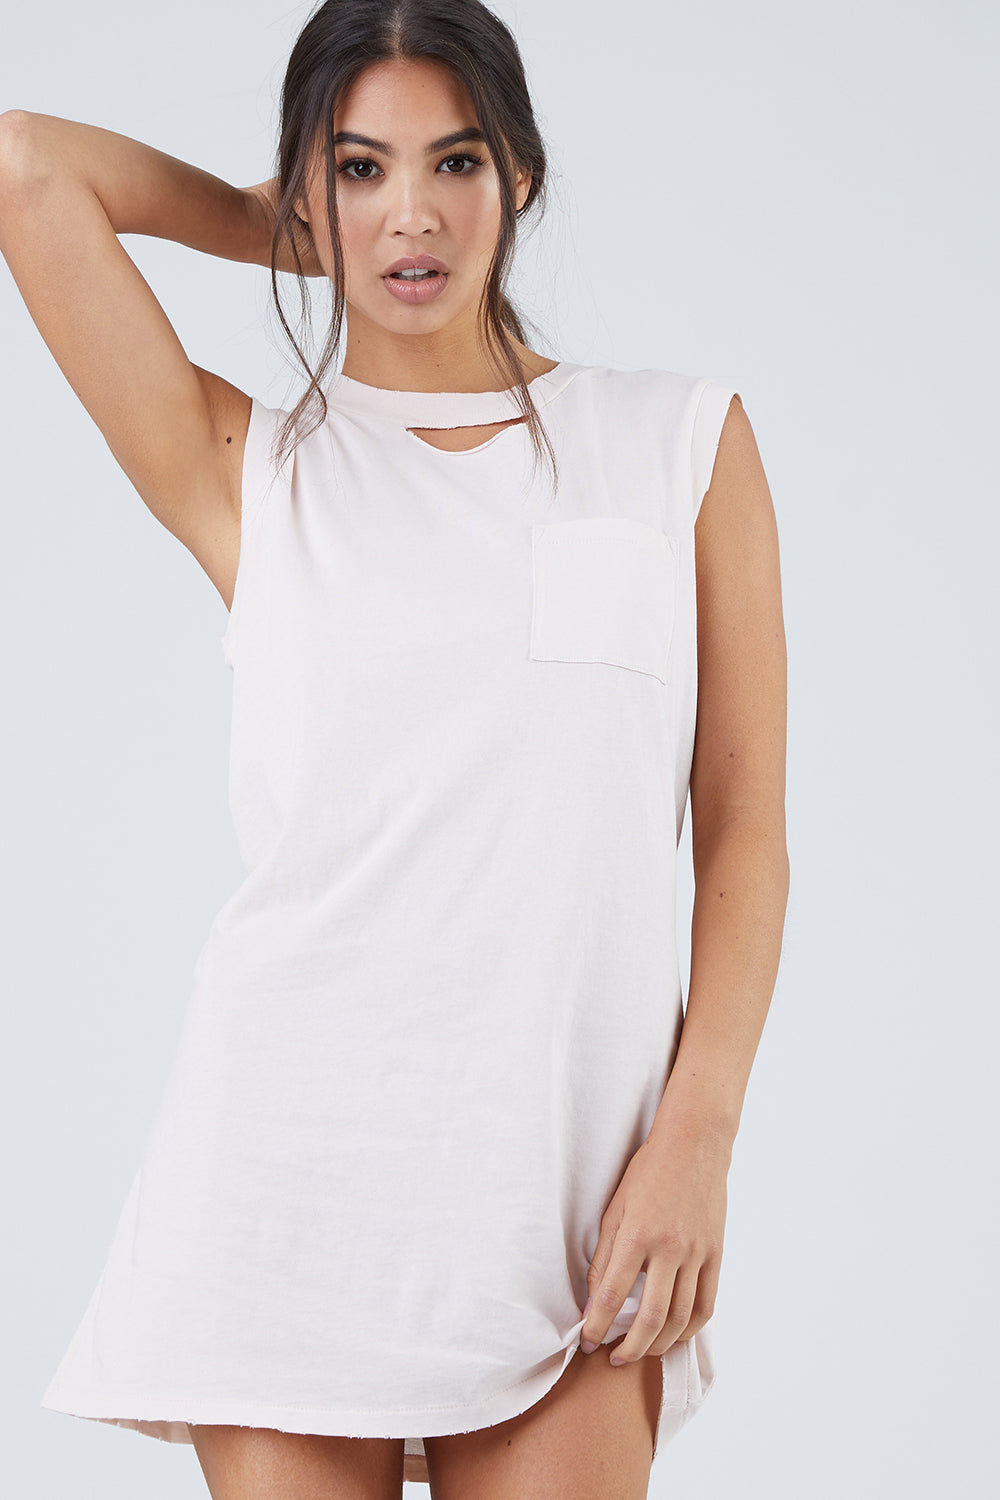 N:PHILANTHROPY Shotgun Dress - Petal Dress | Petal| N:PHILANTHROPY Shotgun Dress - Petal. Features:  High neckline with cutout detail Raw edge cap sleeves 100% Cotton jersey Machine wash cold like colors, lay flat to dry Made in LA Front View